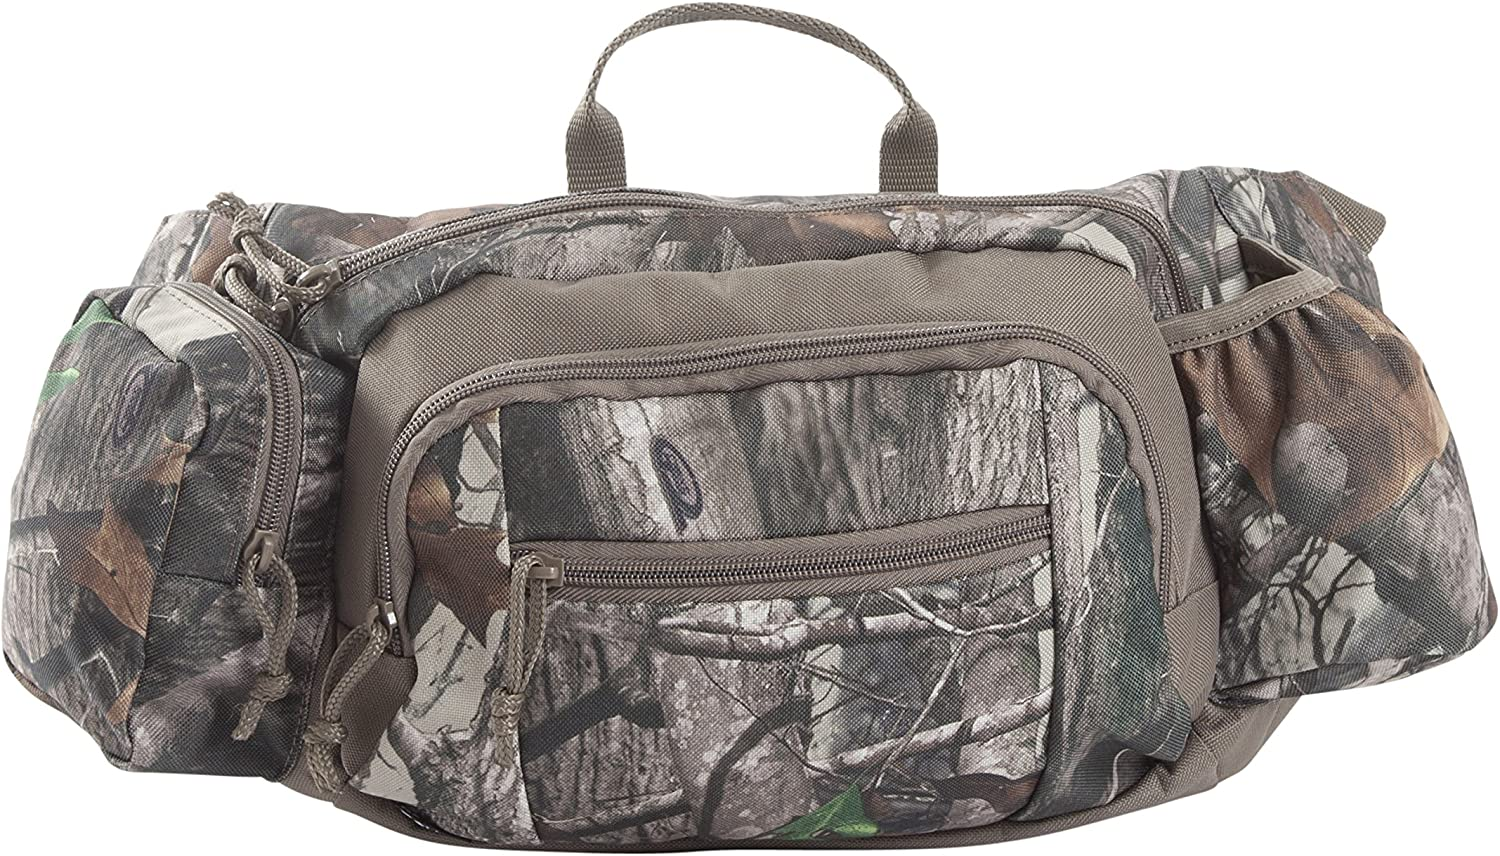 Allen Crusade Camo Hunting Waist Pack, 600 Cubic Inches, Next G2